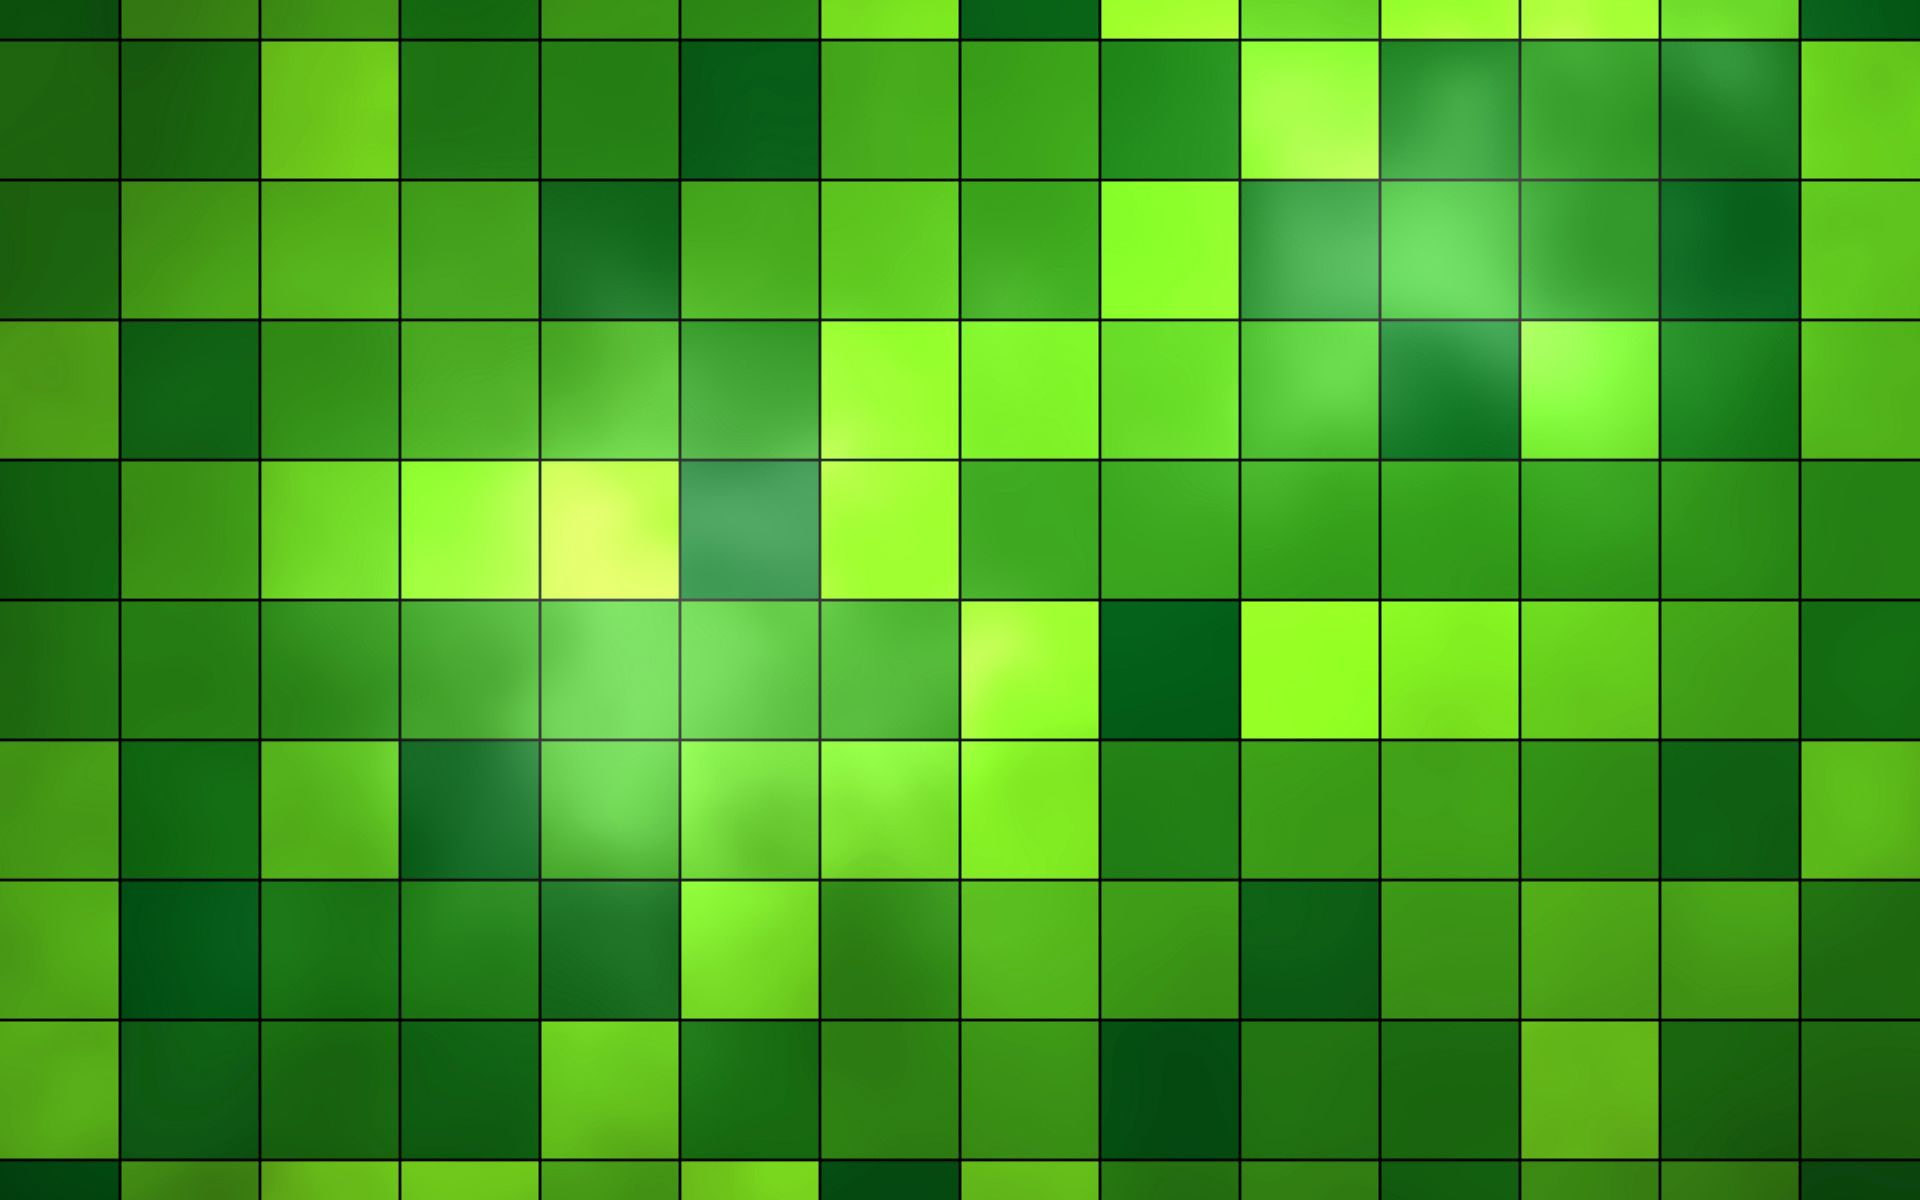 Hd wallpaper green - Green Abstract Wallpapers Full Hd Wallpaper Search